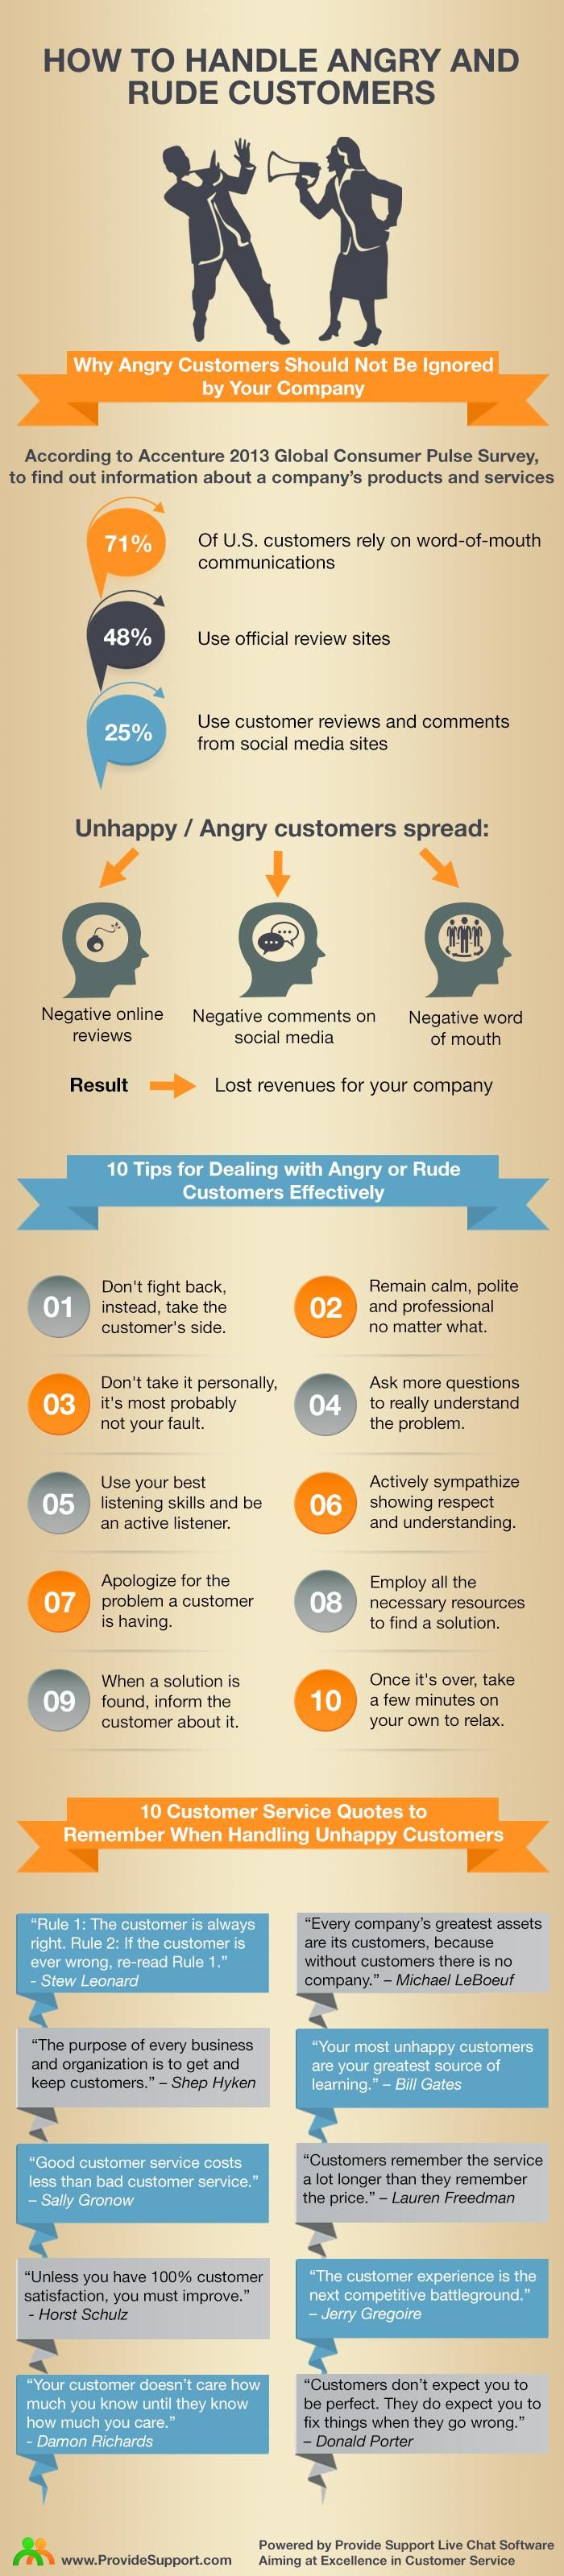 How to Handle Angry Customers [Infographic] | Marina Shulzhenko | LinkedIn